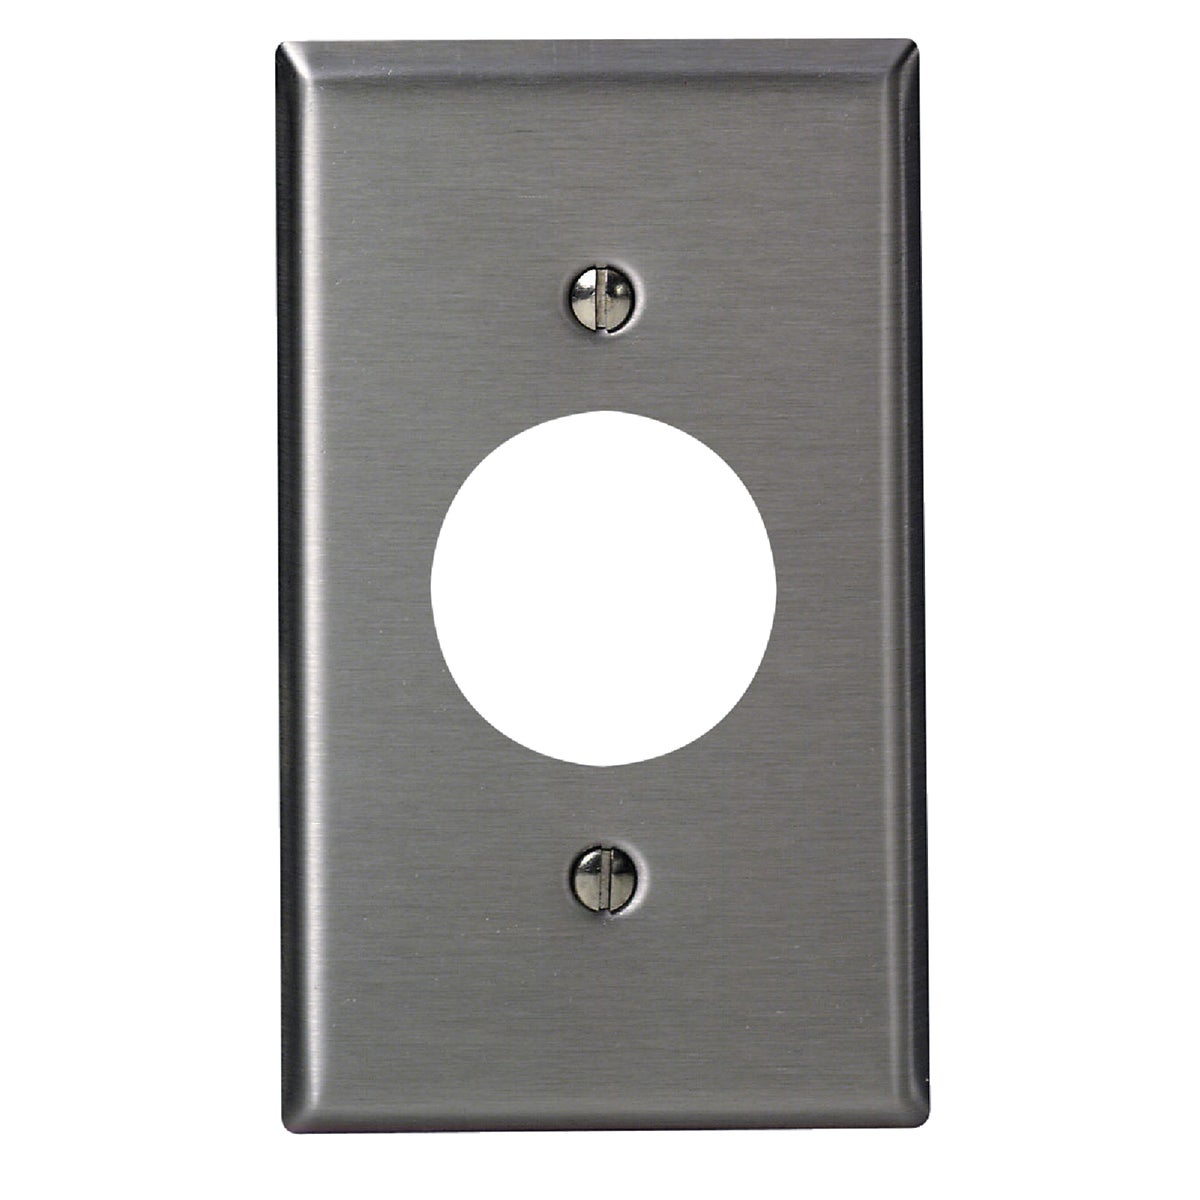 SS 1-OUTLET WALL PLATE - 84004-40 by Leviton Mfg Co